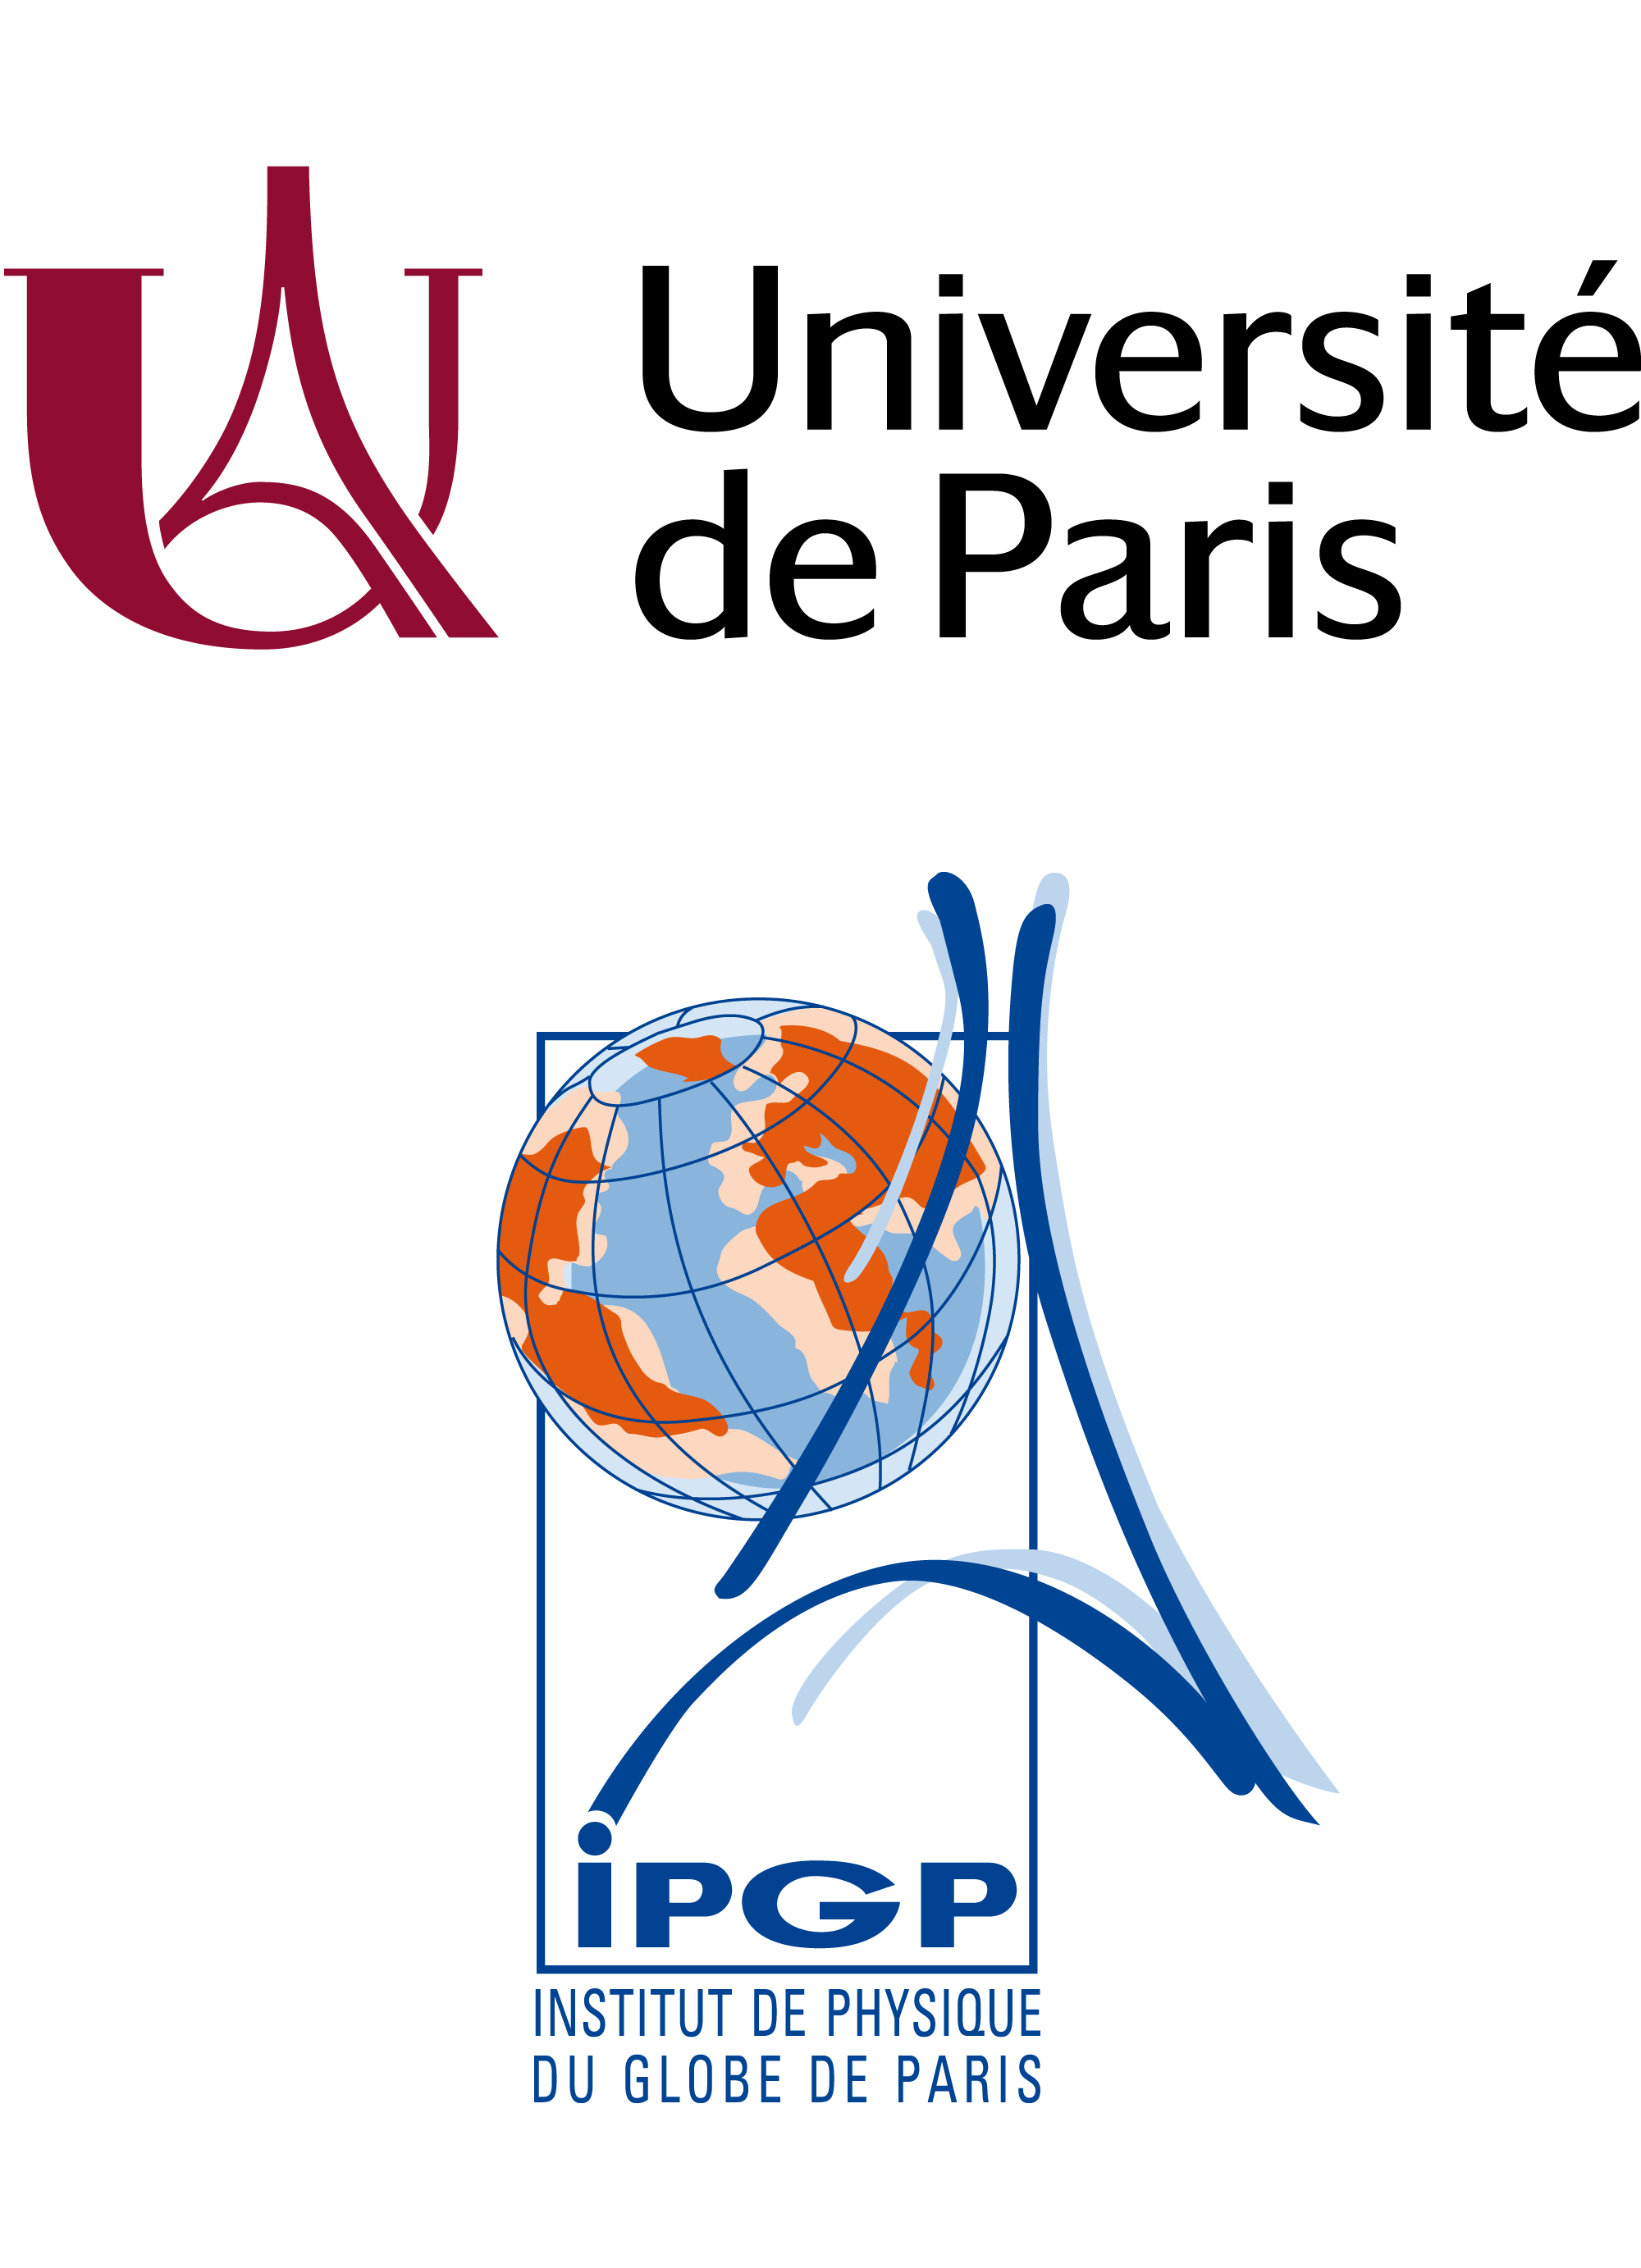 Institut de Physique du Globe de Paris (IPGP)